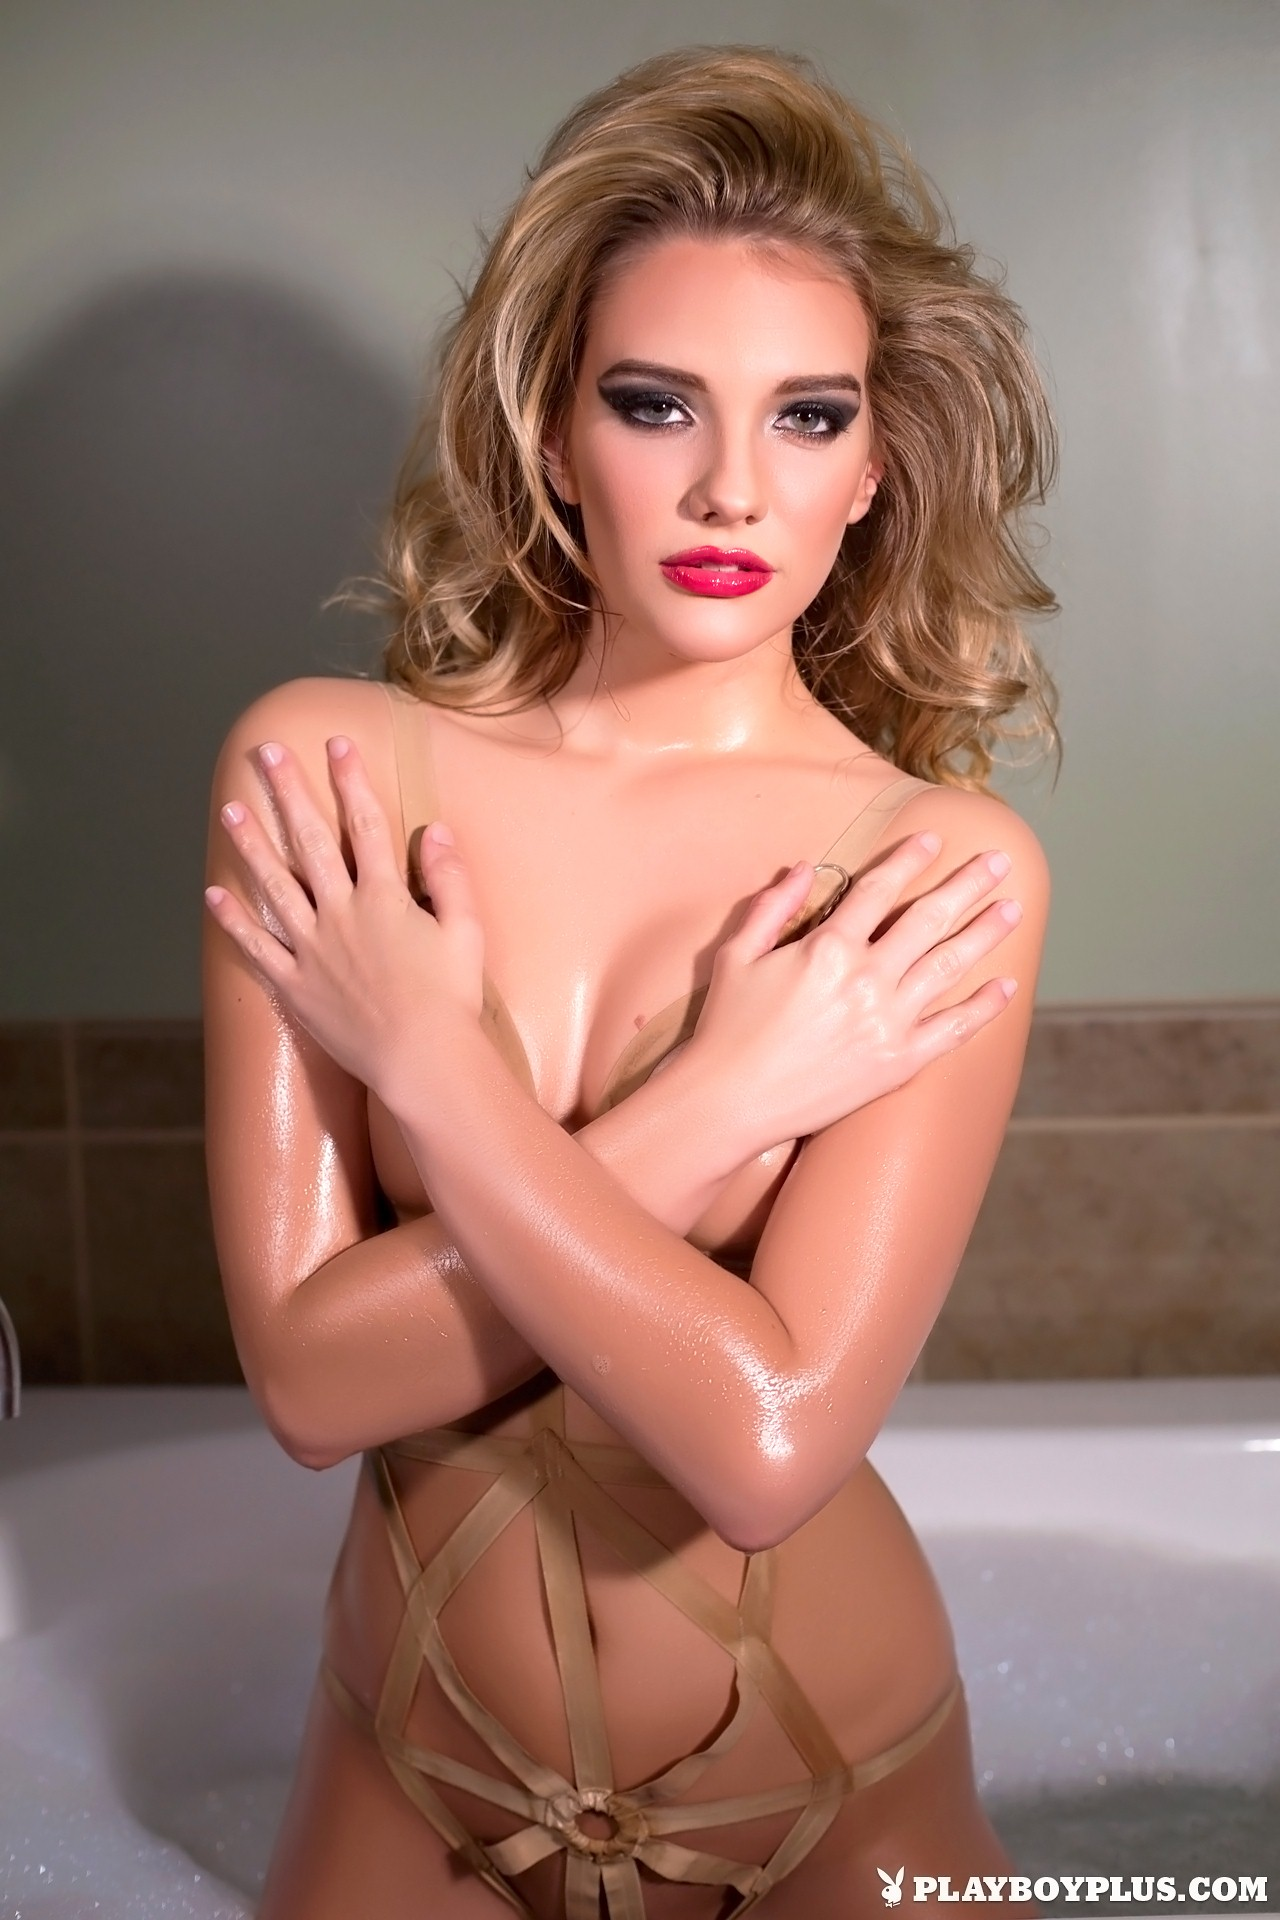 Kenna James naked In The Bath for Playboy | Daily Girls @ Female Update